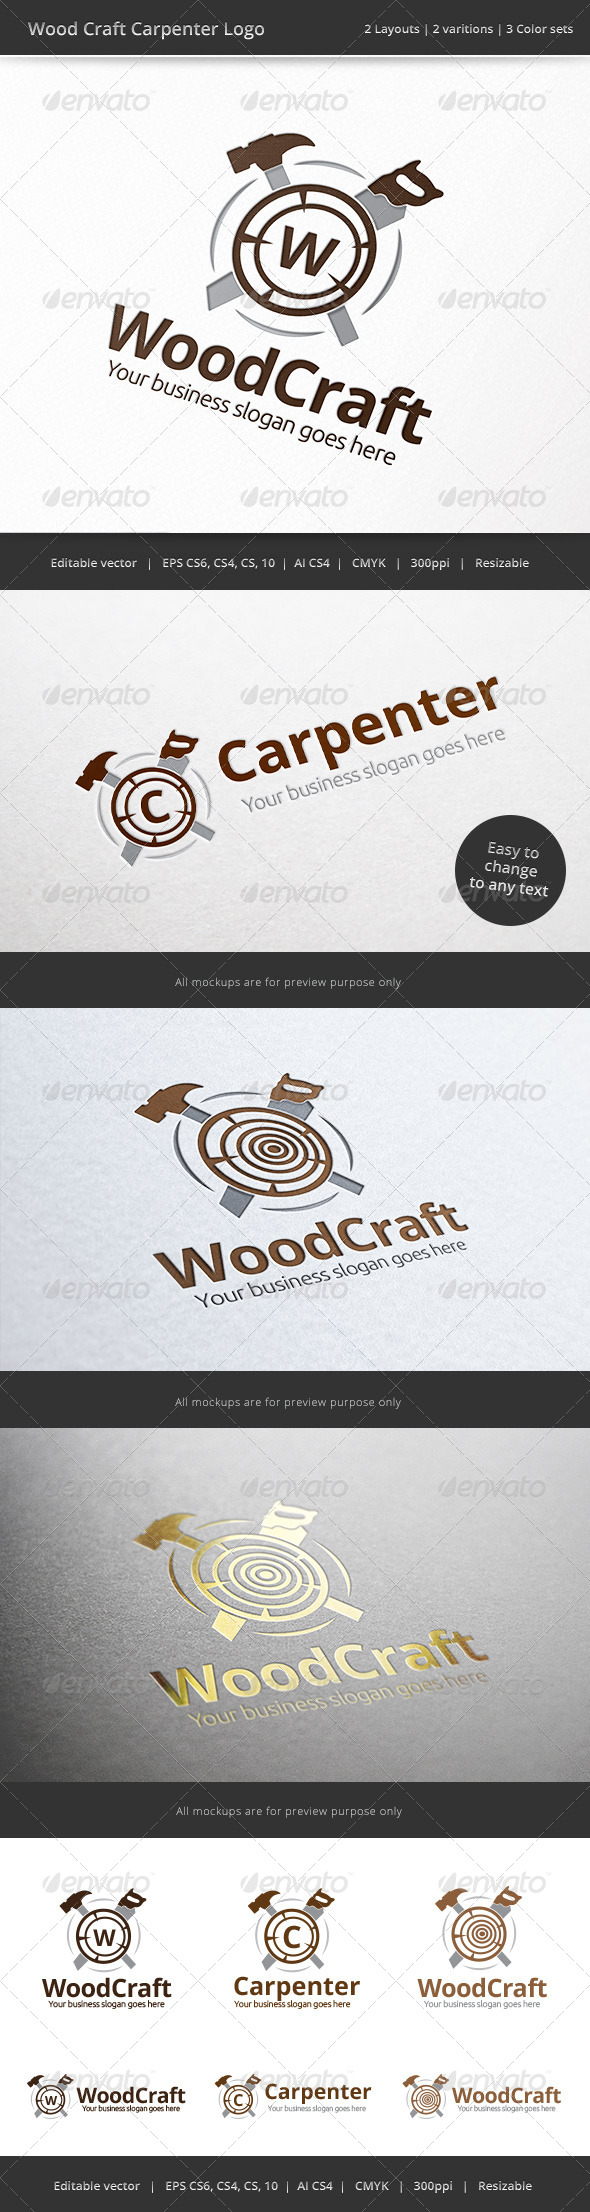 Carpenter Wood Craft Logo - Objects Logo Templates